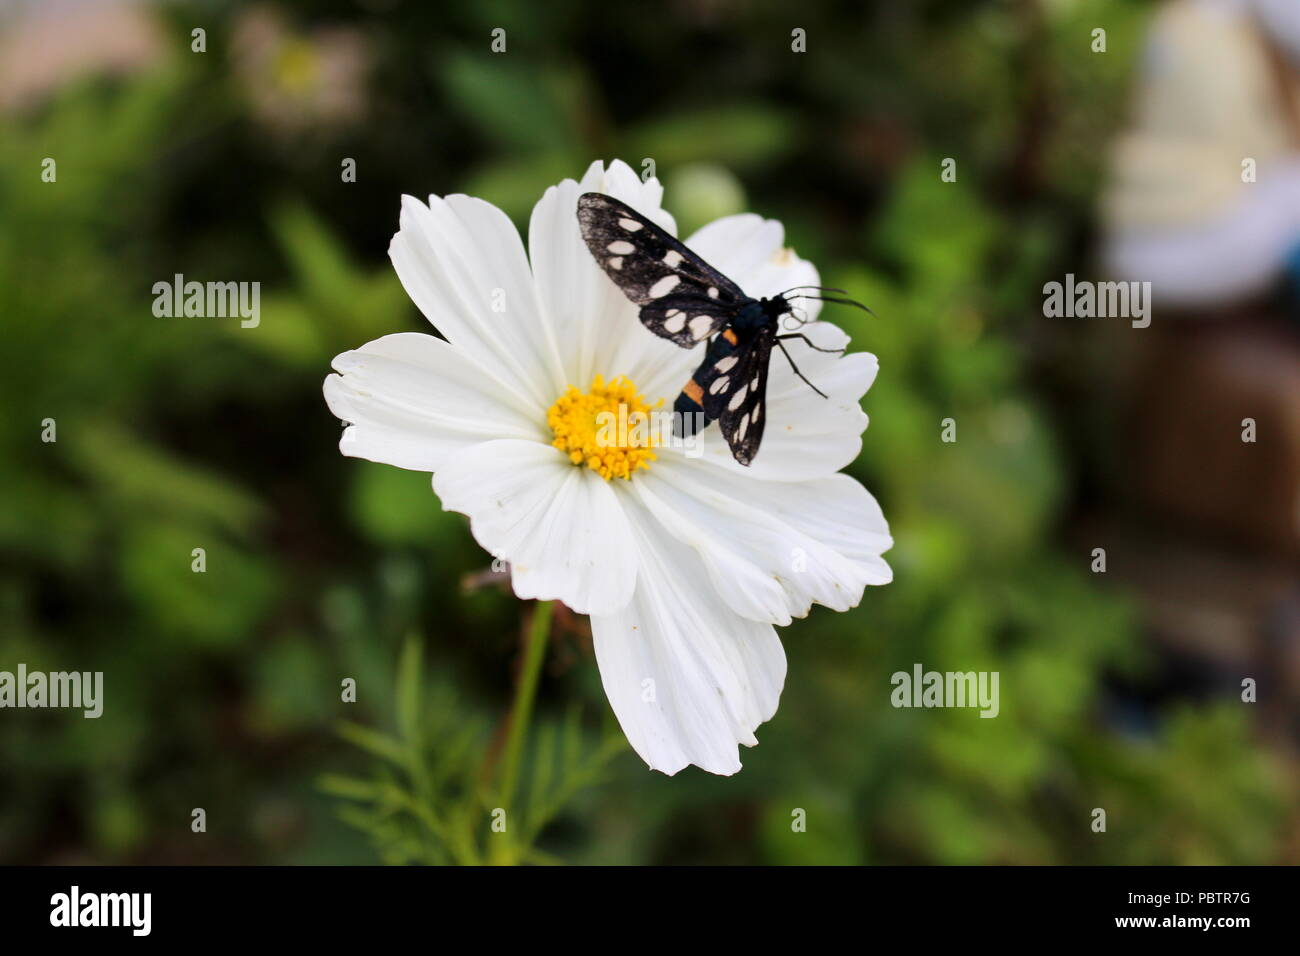 Garden cosmos or Cosmos bipinnatus or Mexican aster pure white flower with black and white wings tiger moth insect and dark leaves background on warm - Stock Image